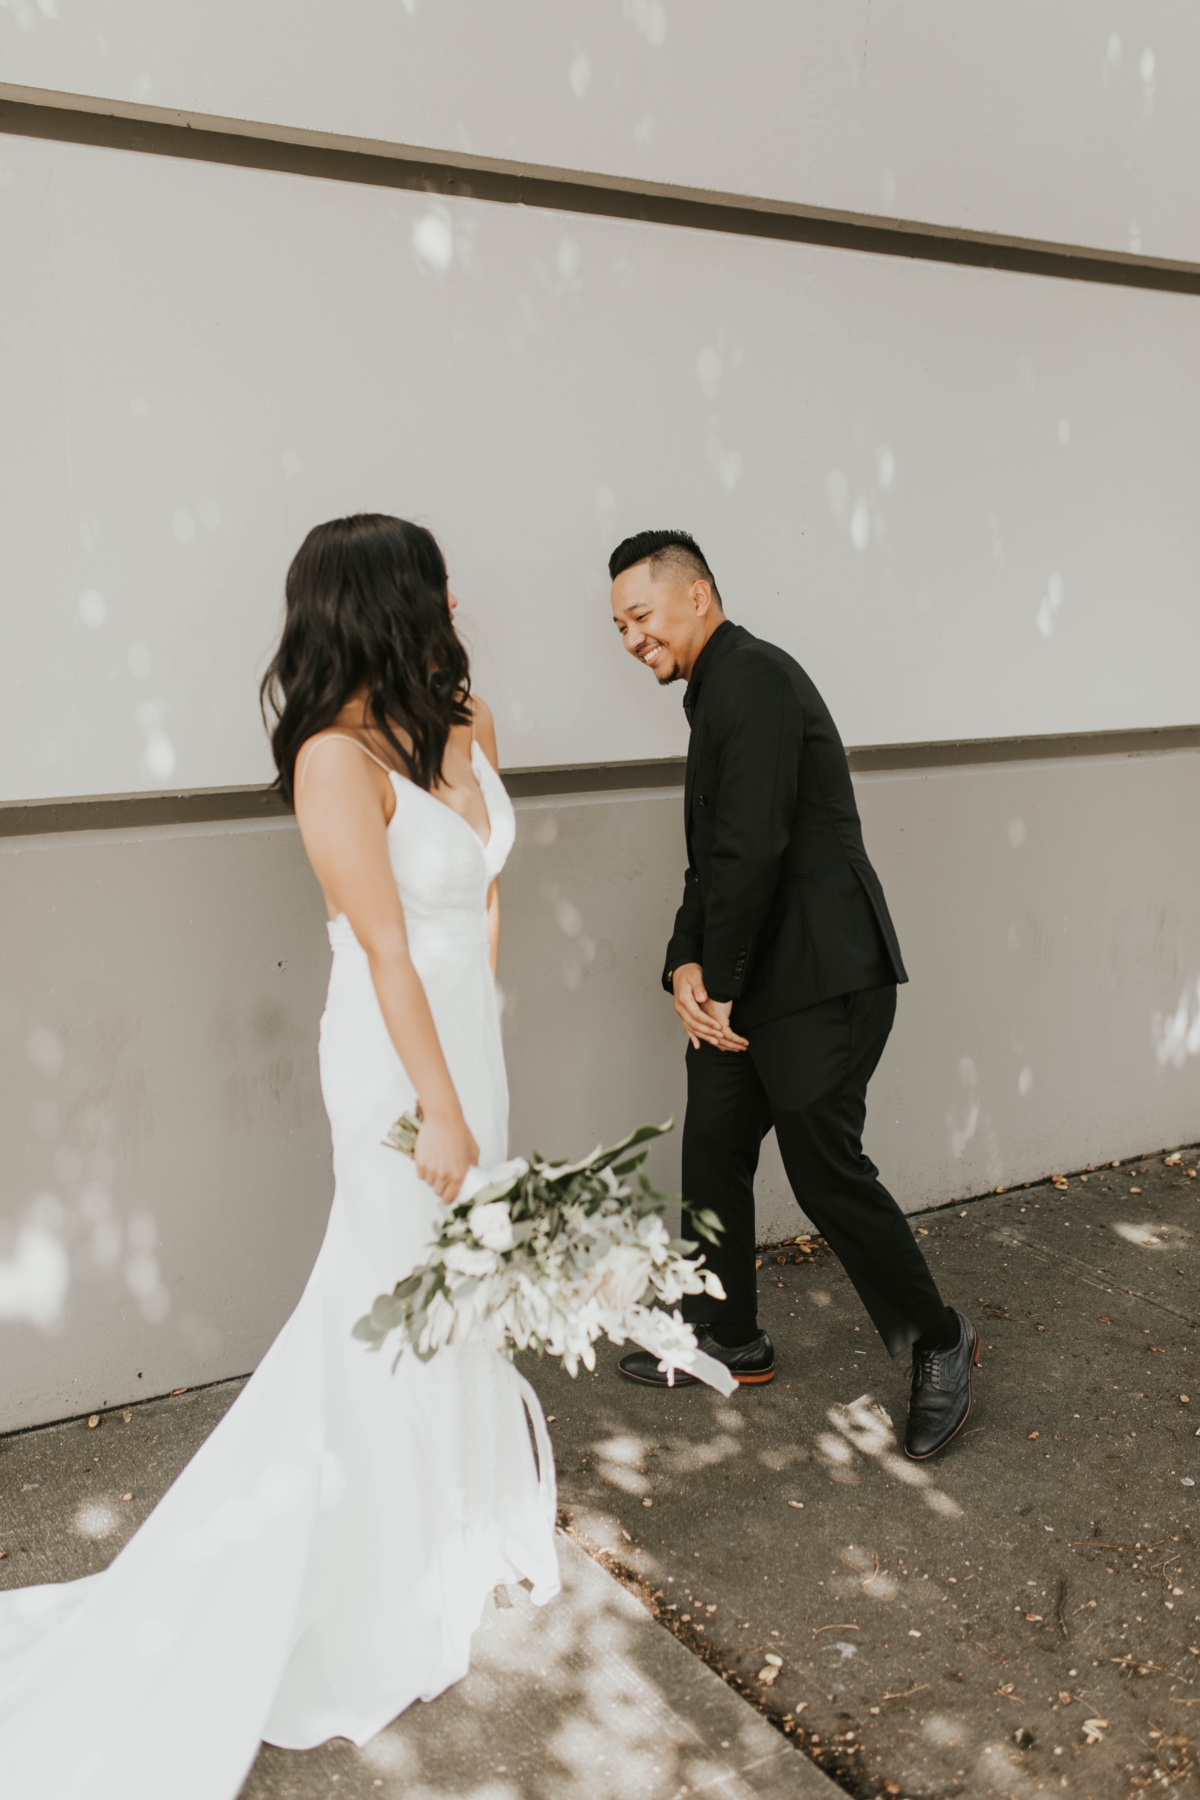 wedding first look photography ideas